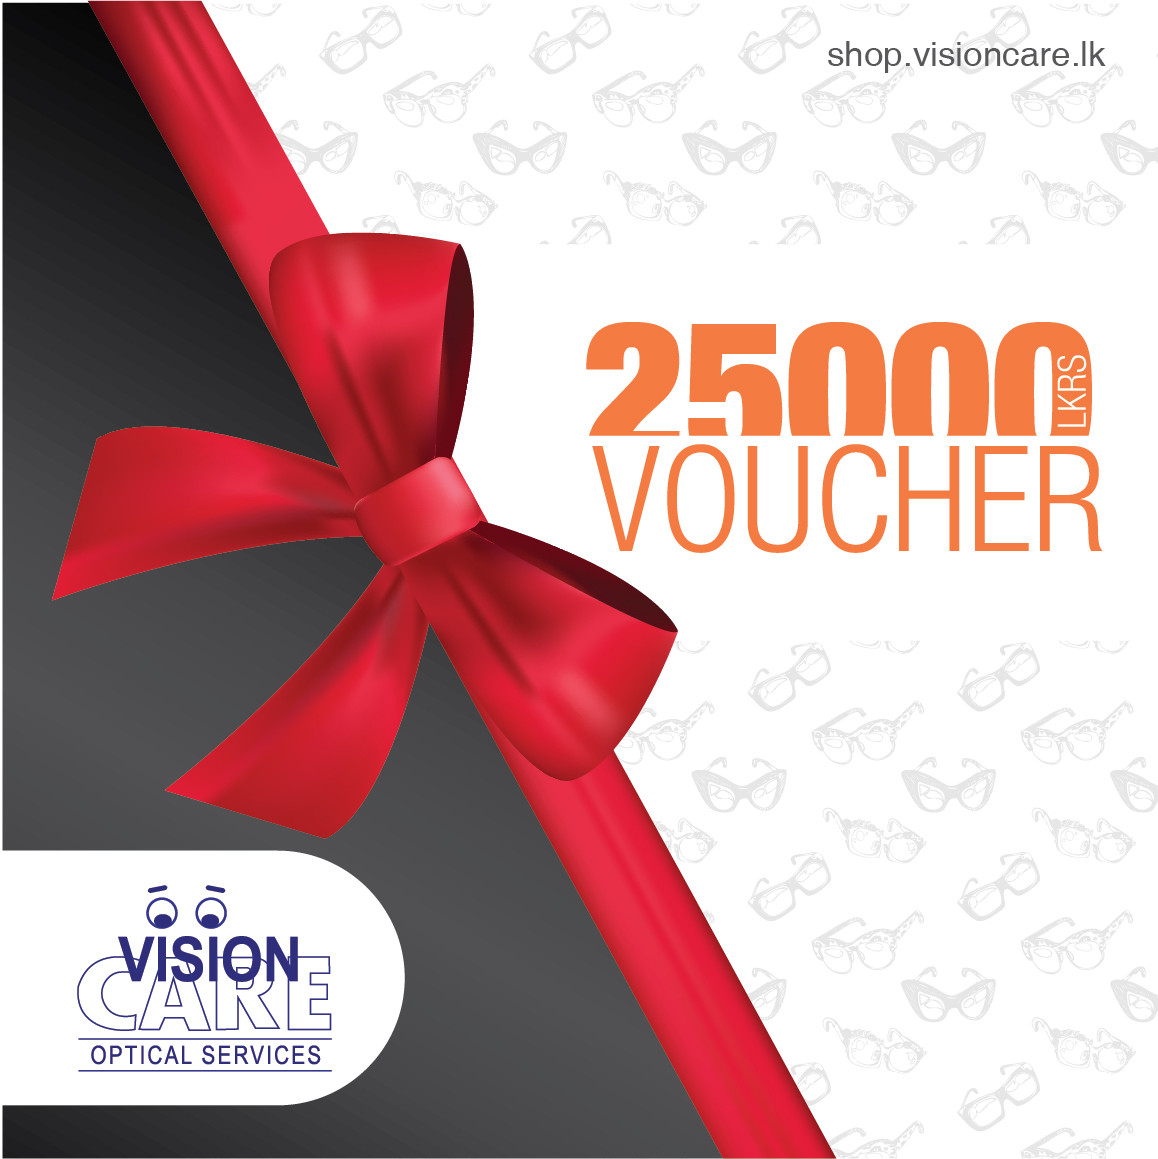 Gift Voucher - Rs.25000